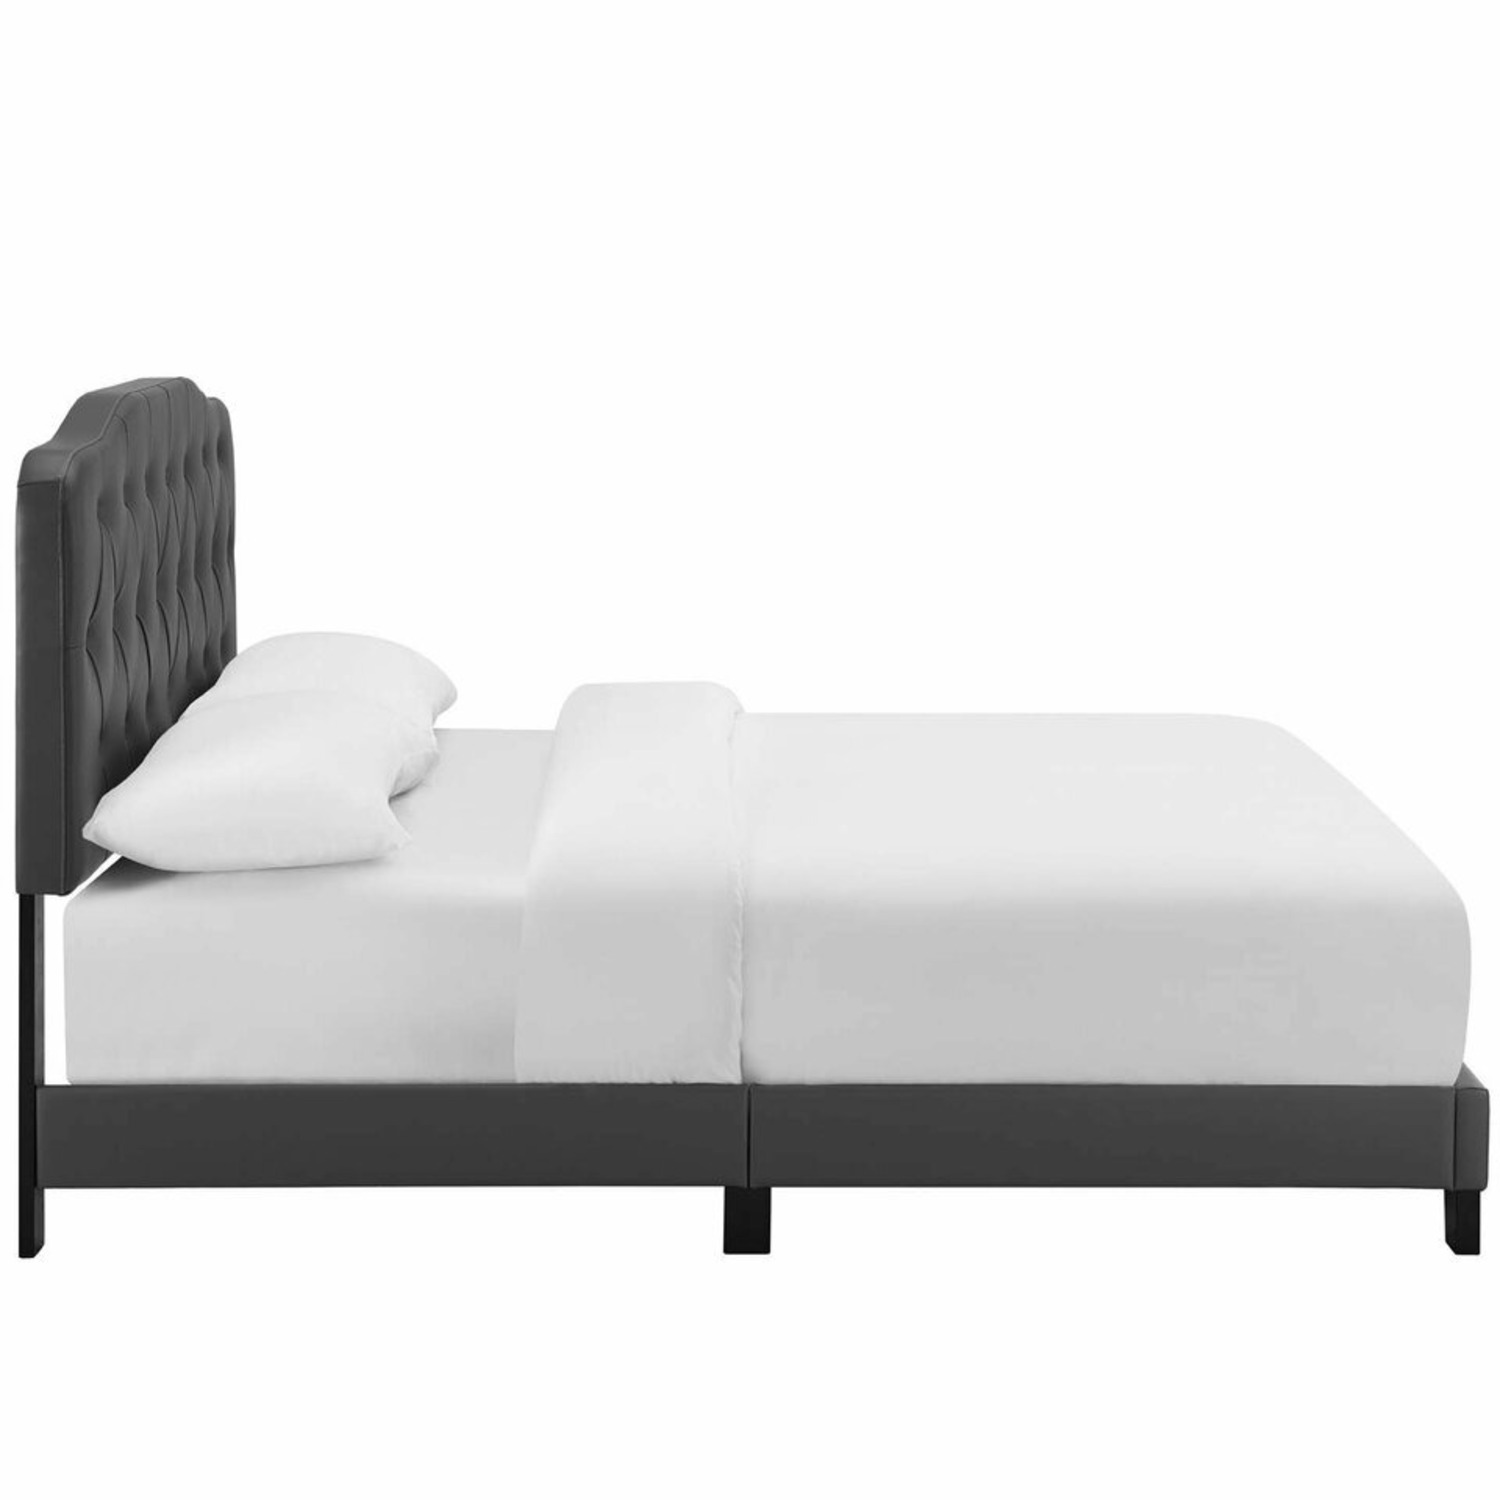 King Bed In Gray Leatherette Upholstery Finish - image-2